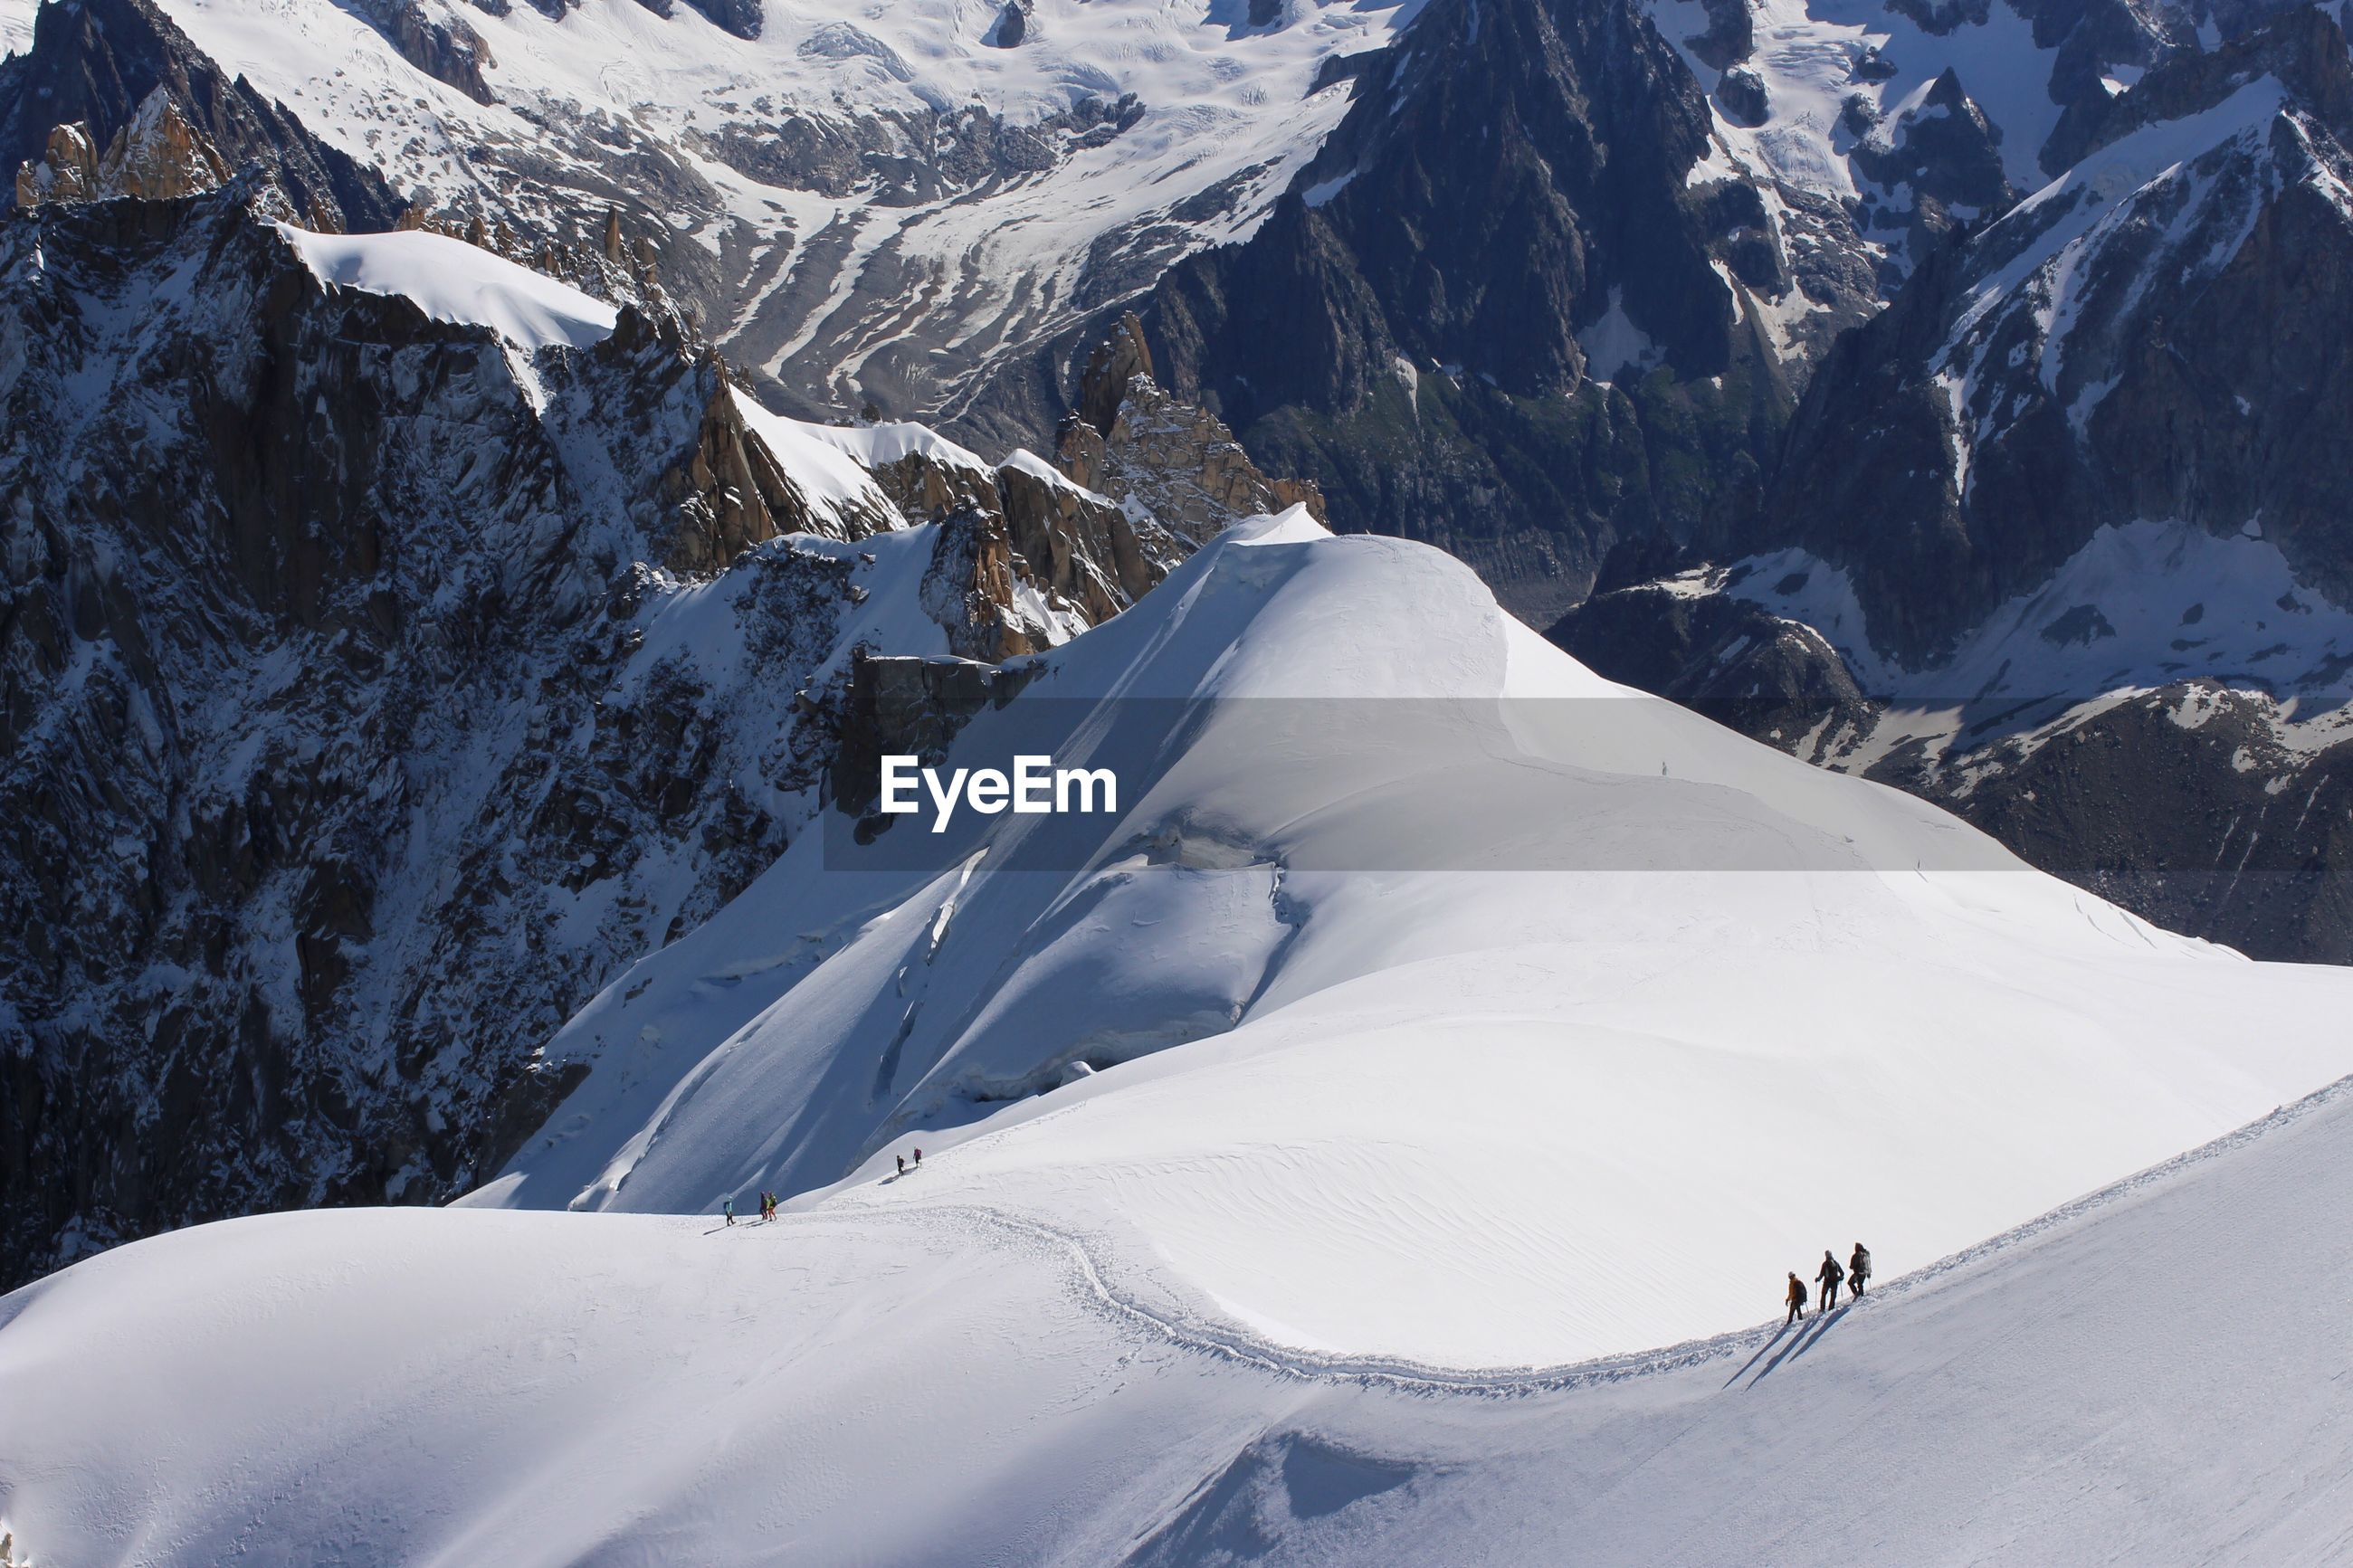 High angle view of people skiing on mont blanc during winter